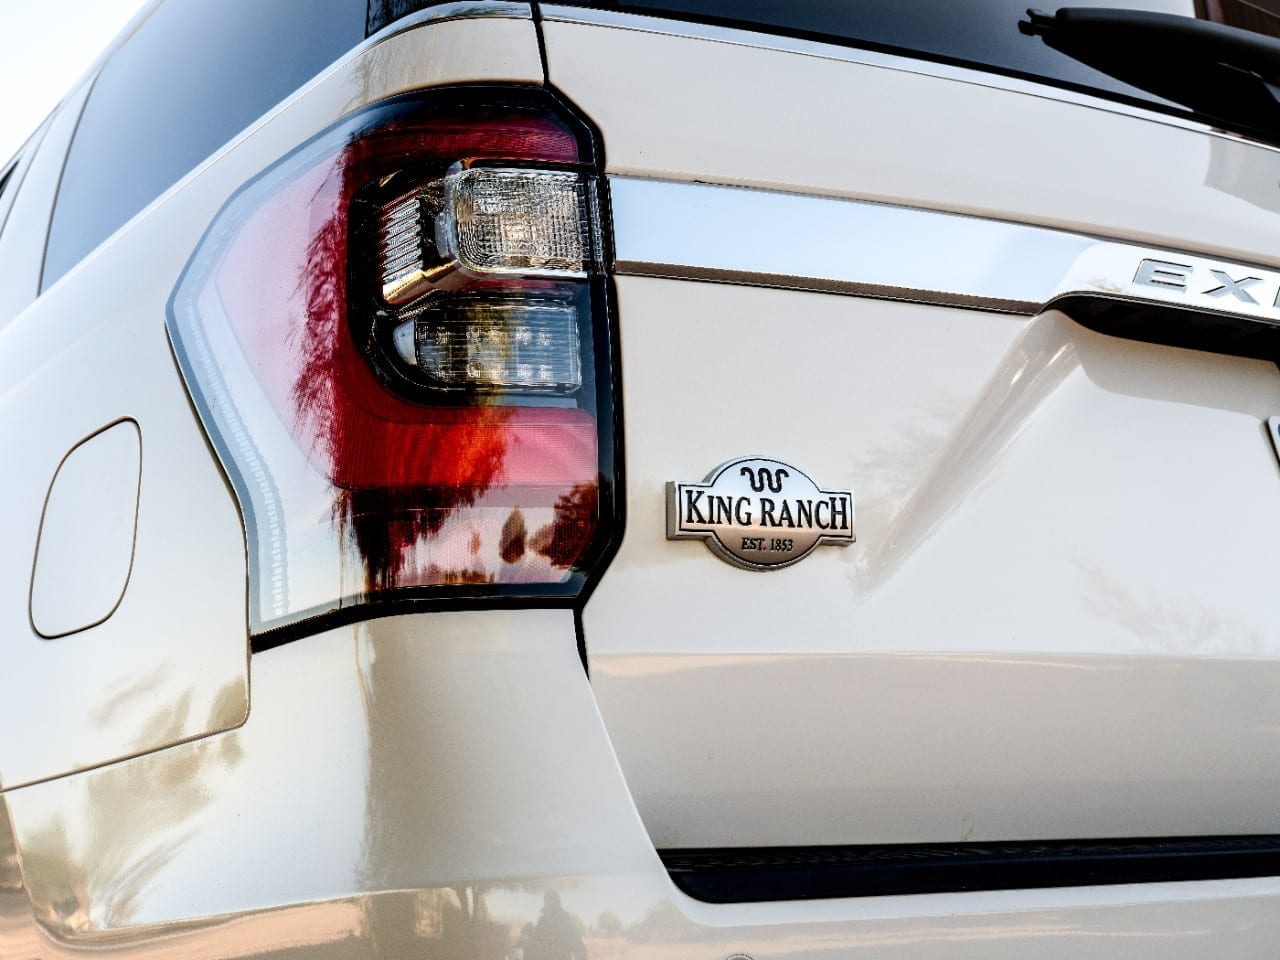 ford brings king ranch moniker back to expedition  wild west themed package brings more luxury